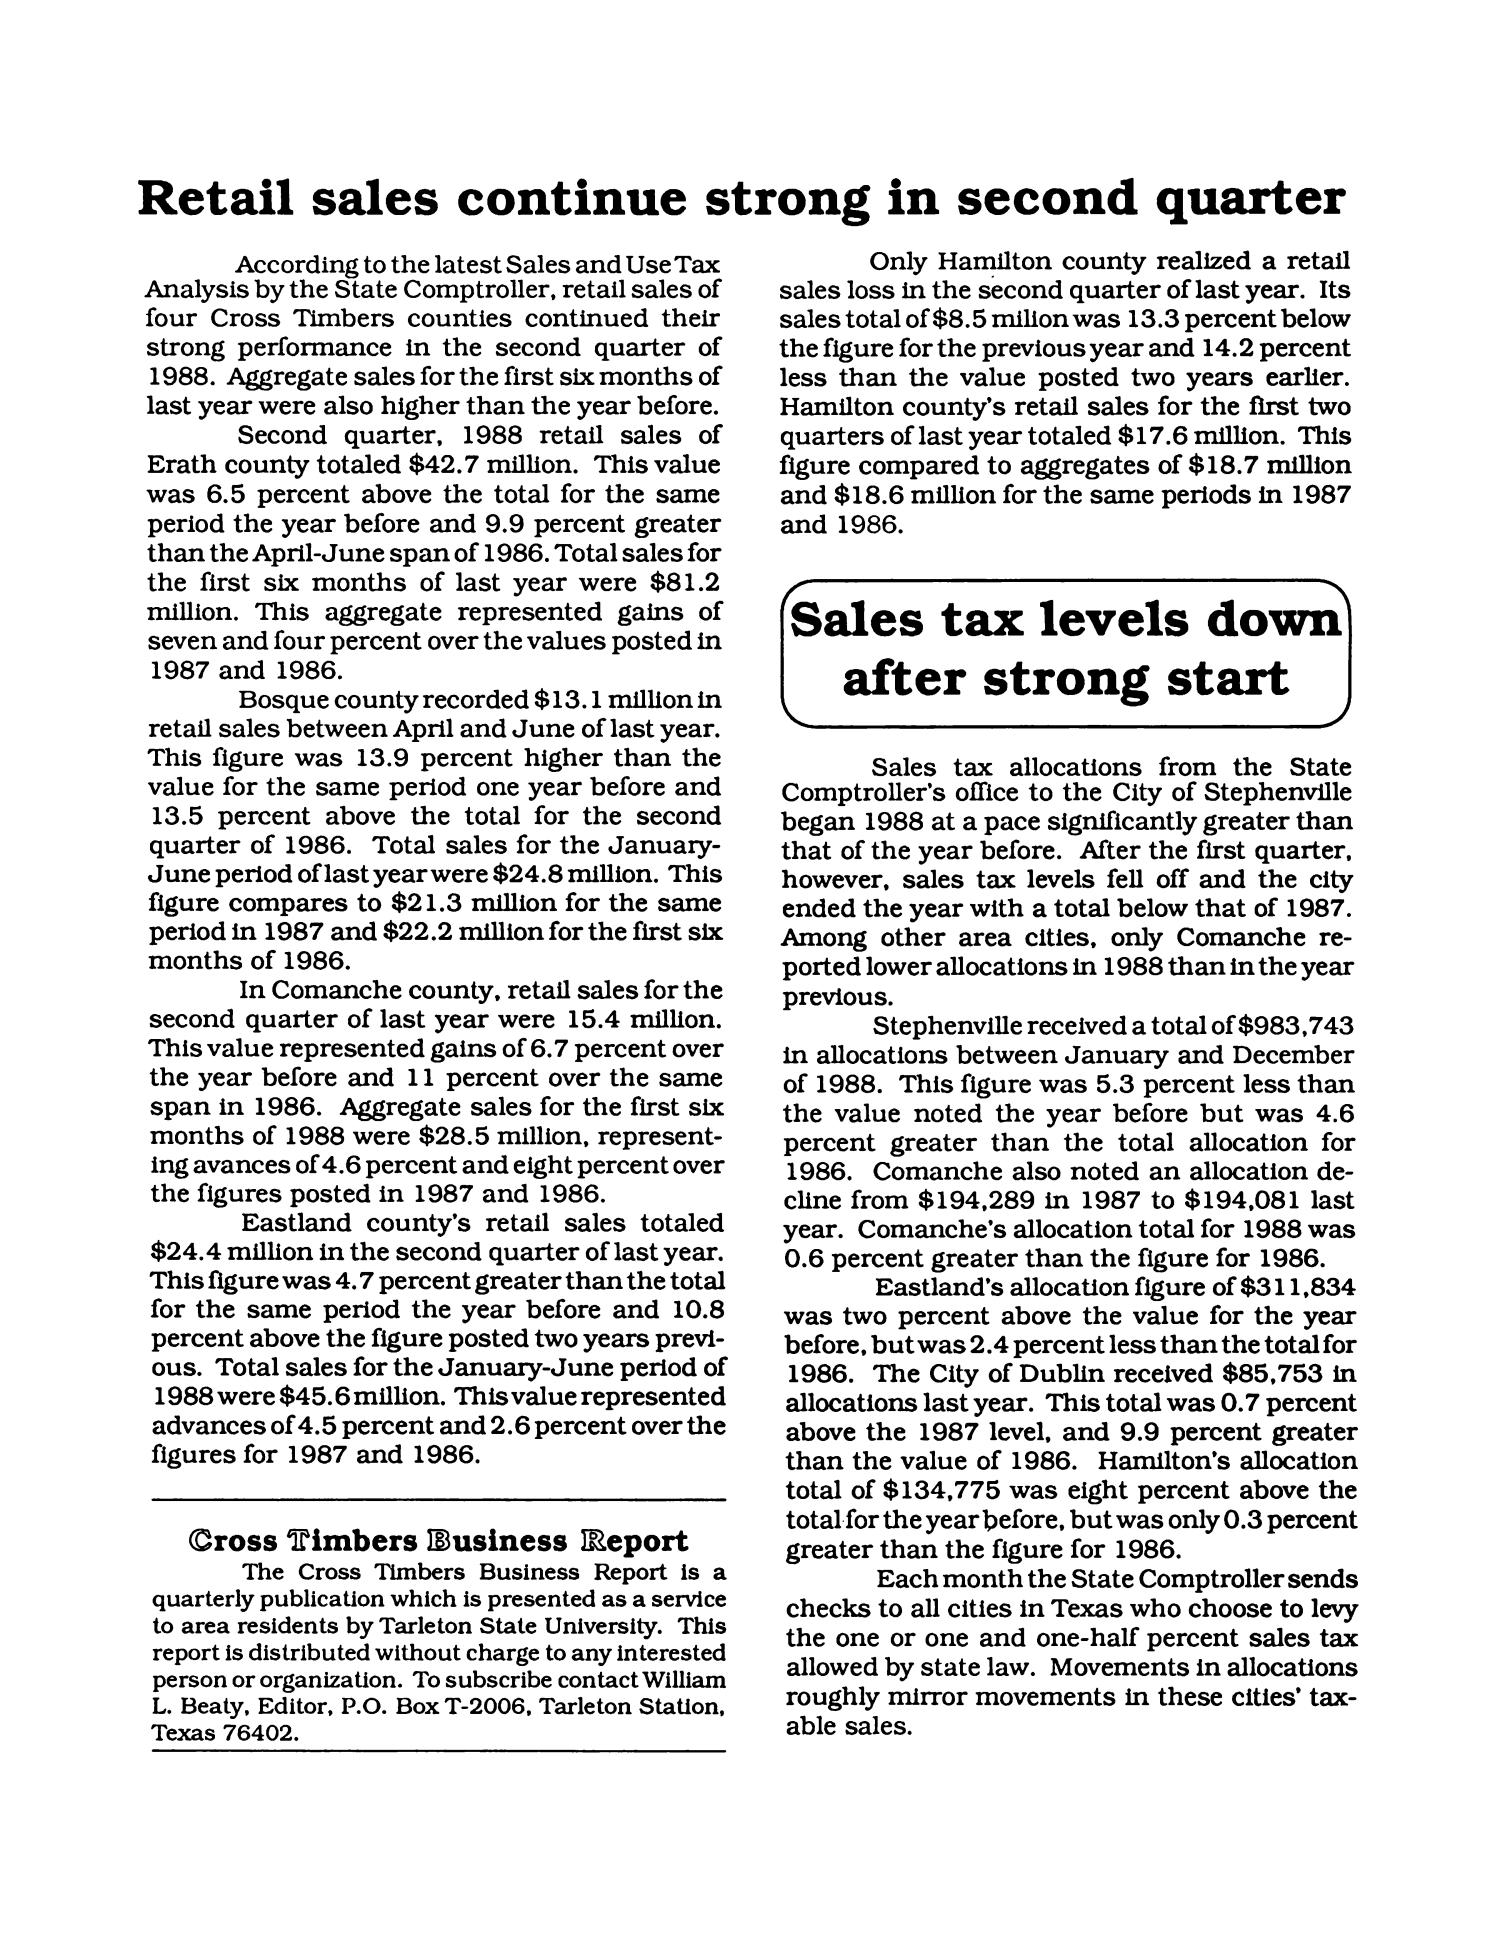 Cross Timbers Business Report, Volume 3, Number 1, Winter 1988                                                                                                      2